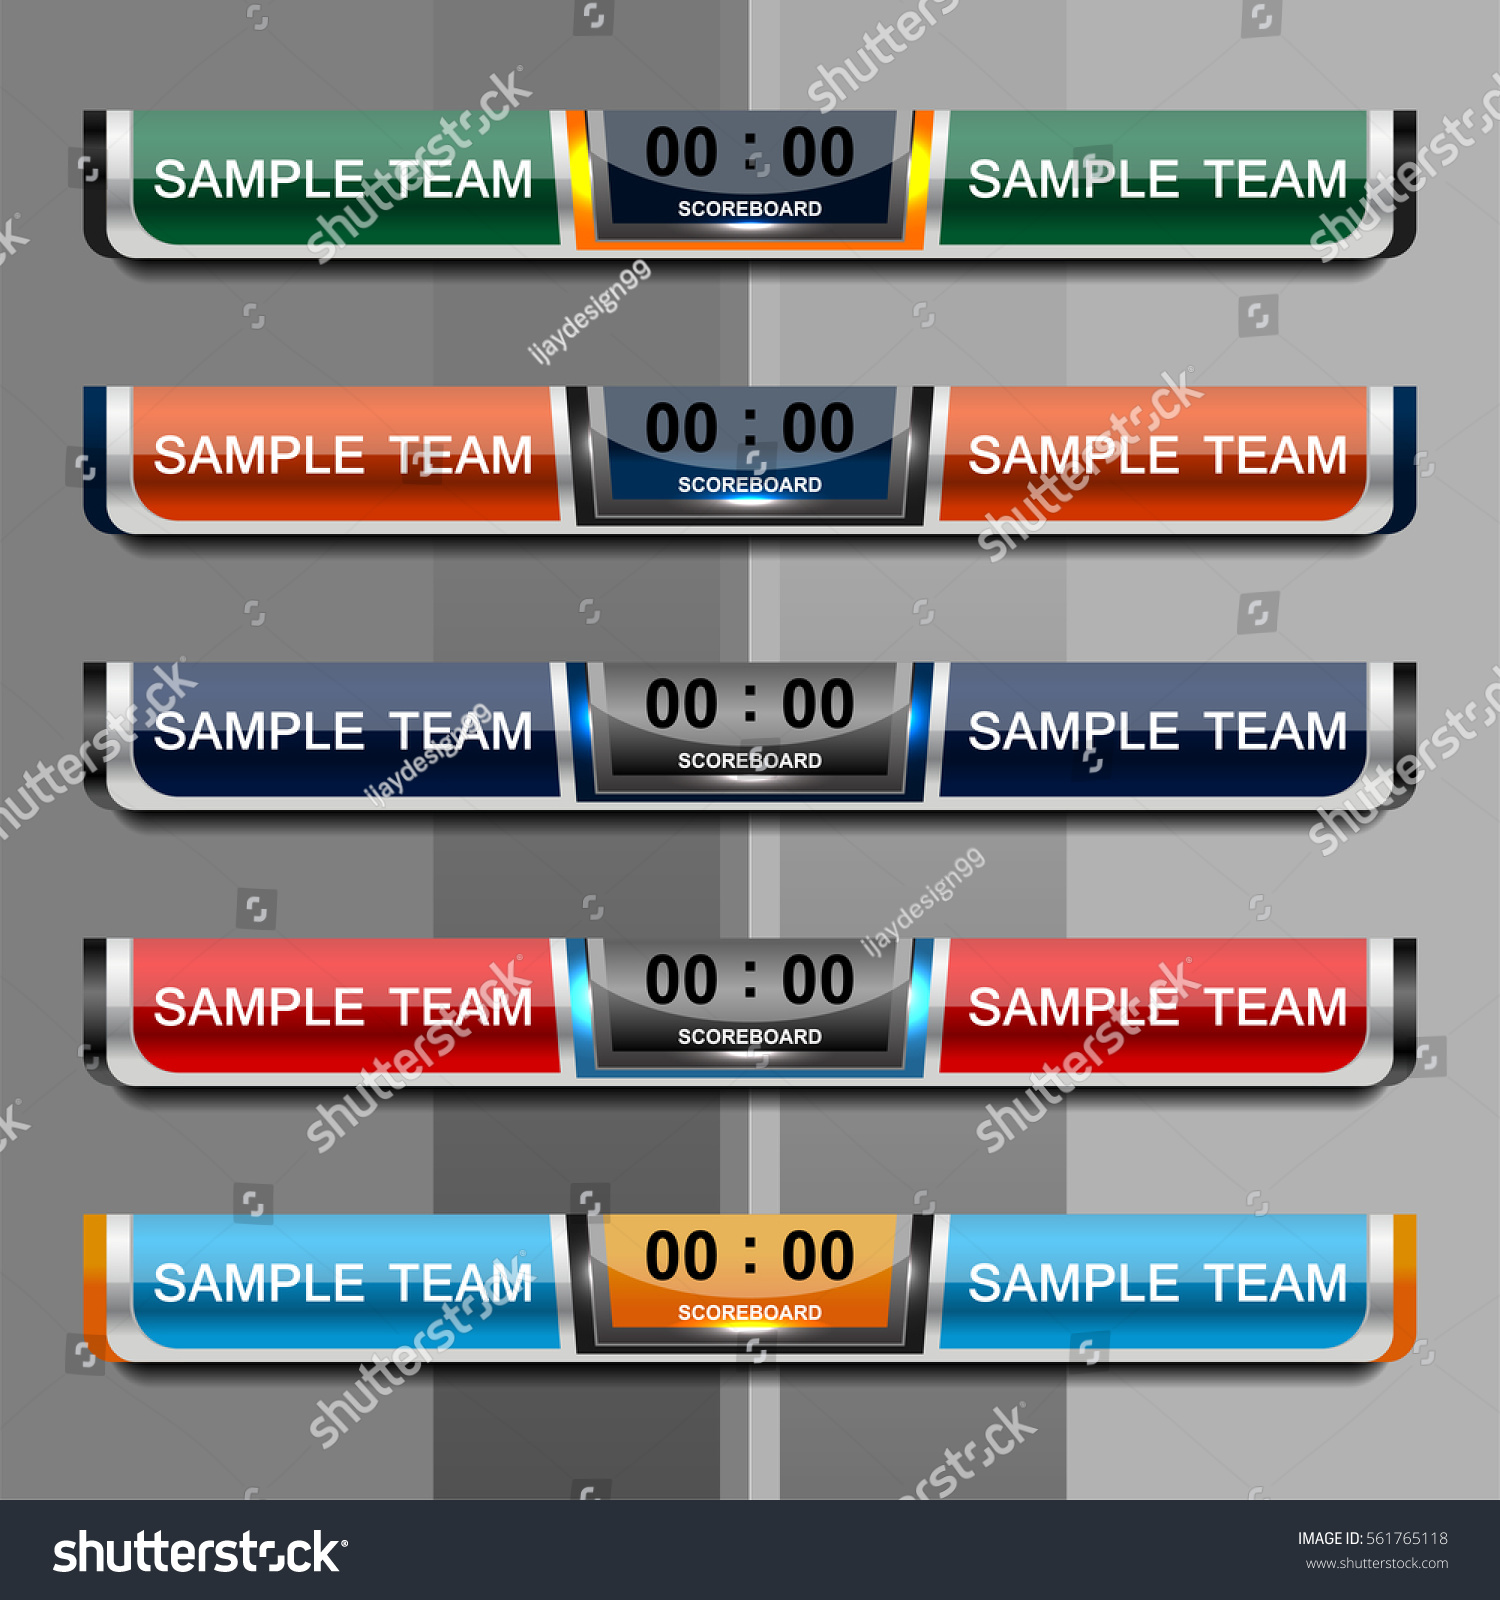 soccer game schedule template image collections template design ideas. Black Bedroom Furniture Sets. Home Design Ideas